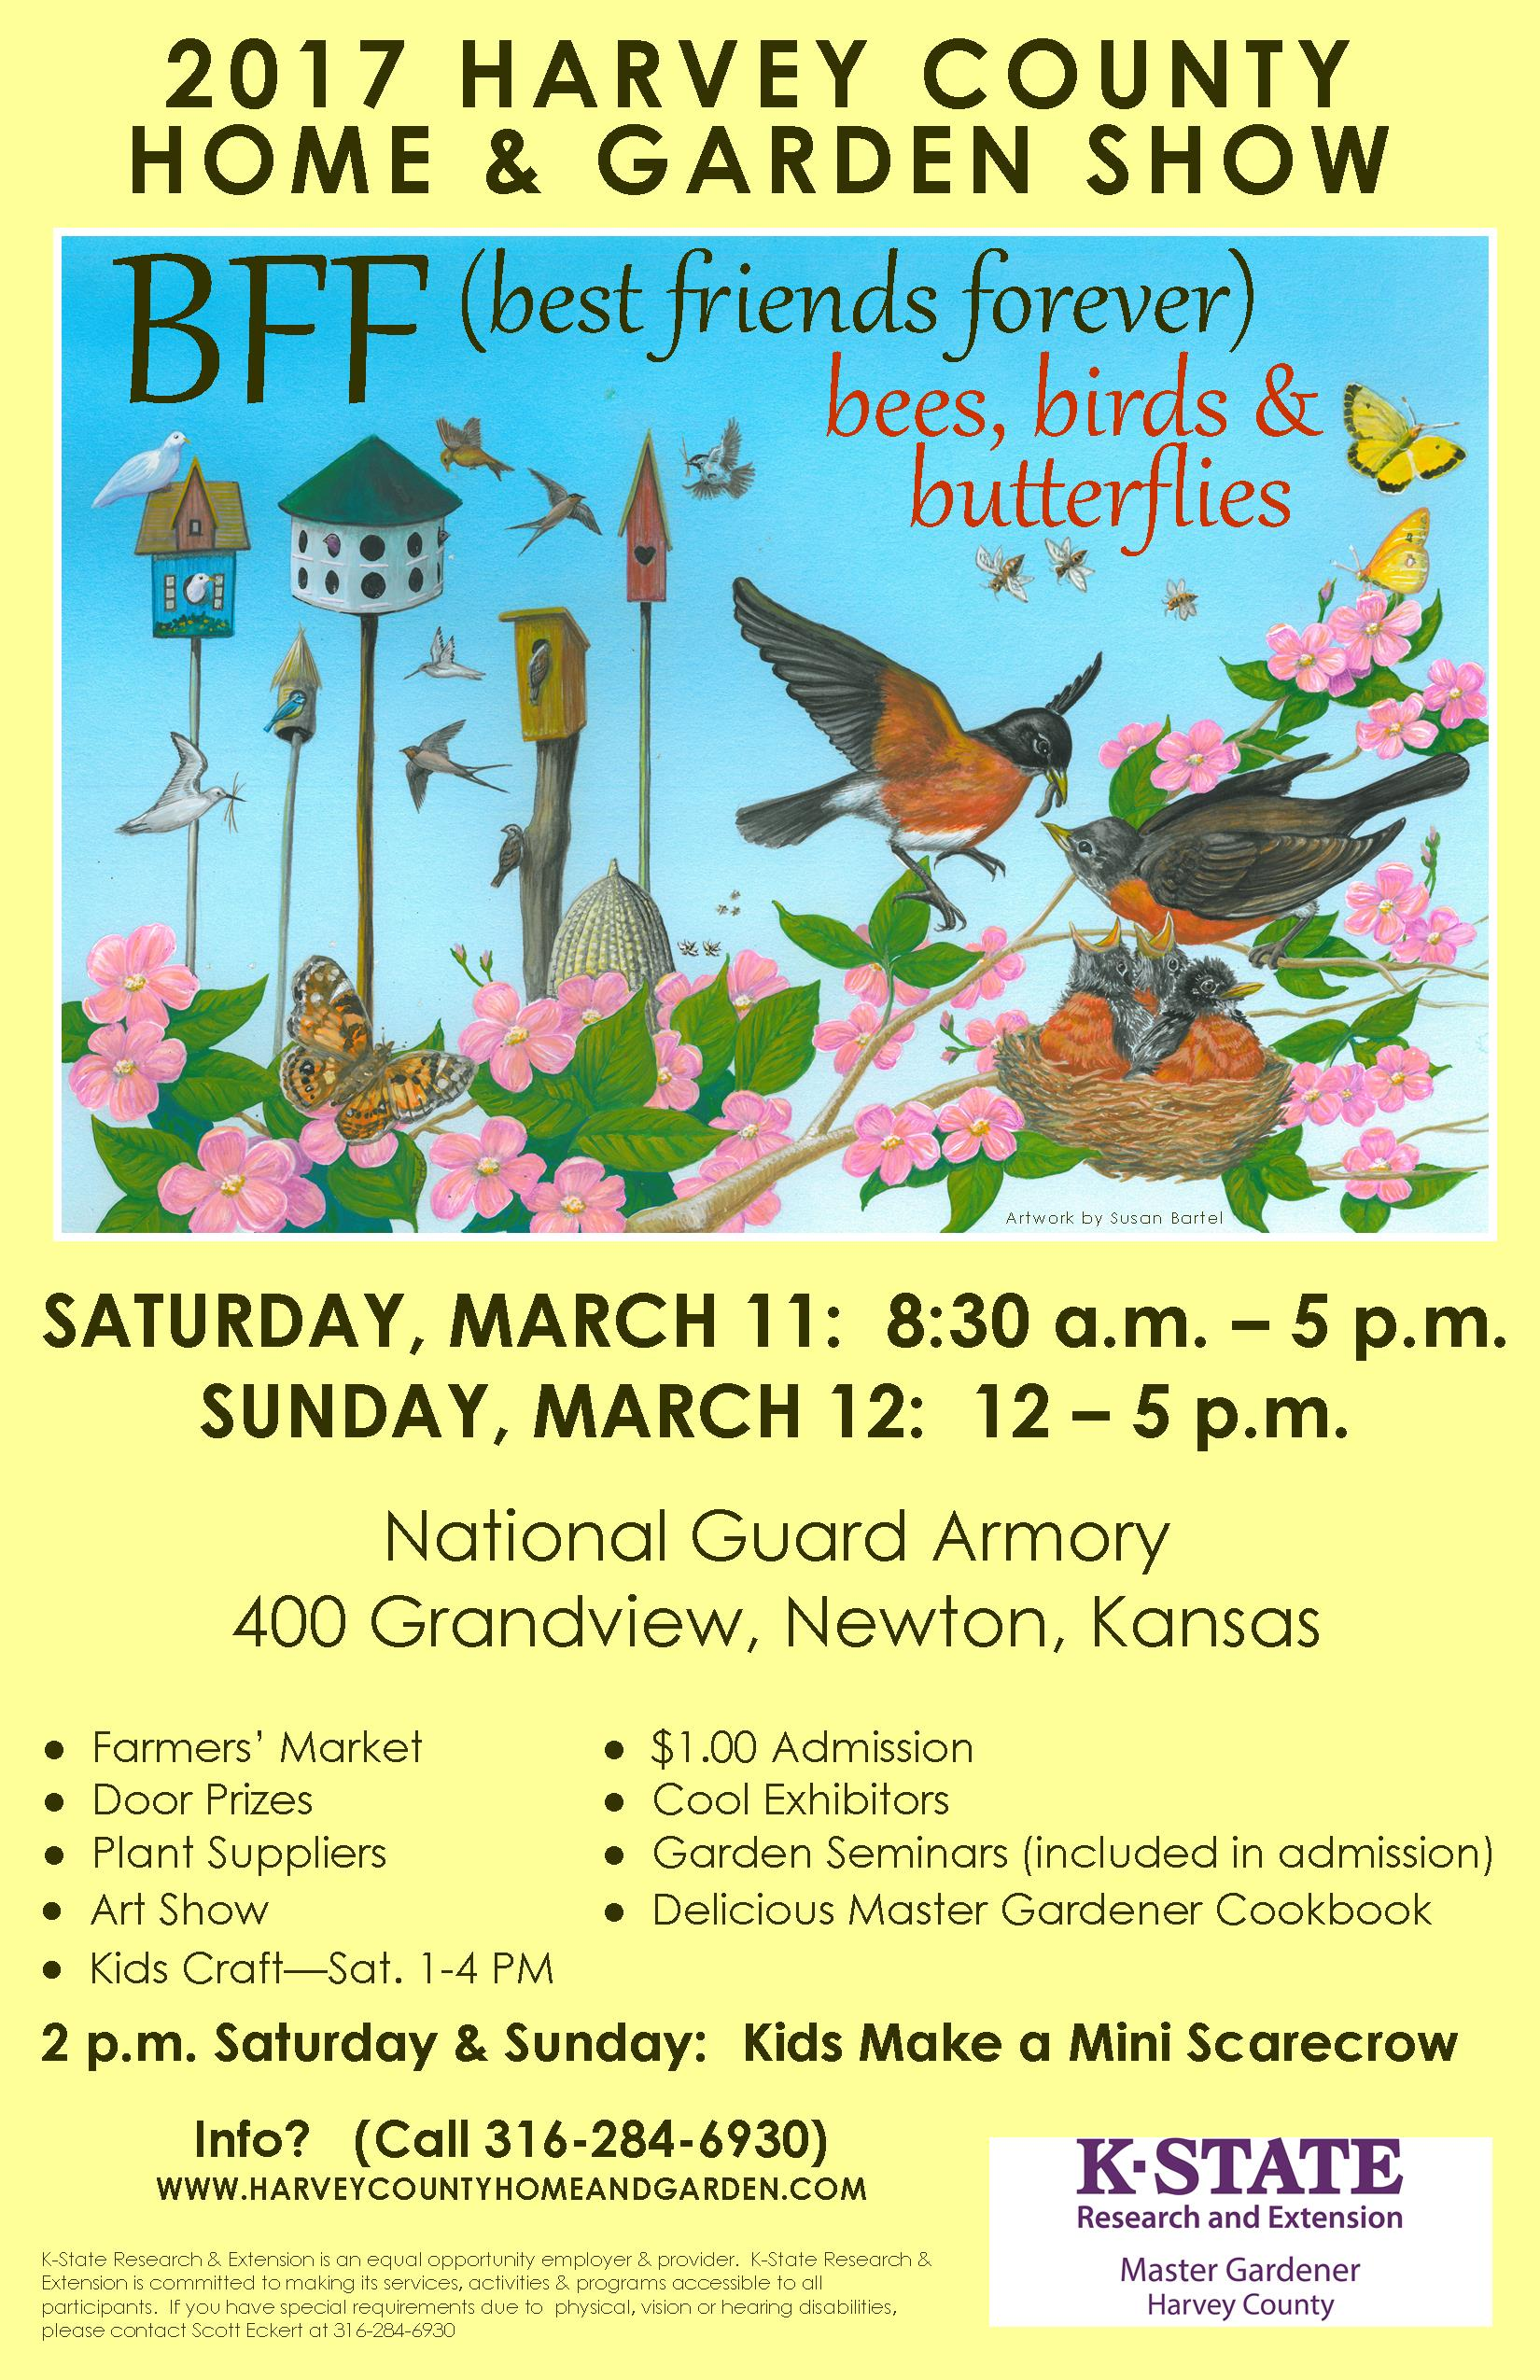 Harvey county home and garden show presenter schedule harvey county for Kansas city home and garden show 2017